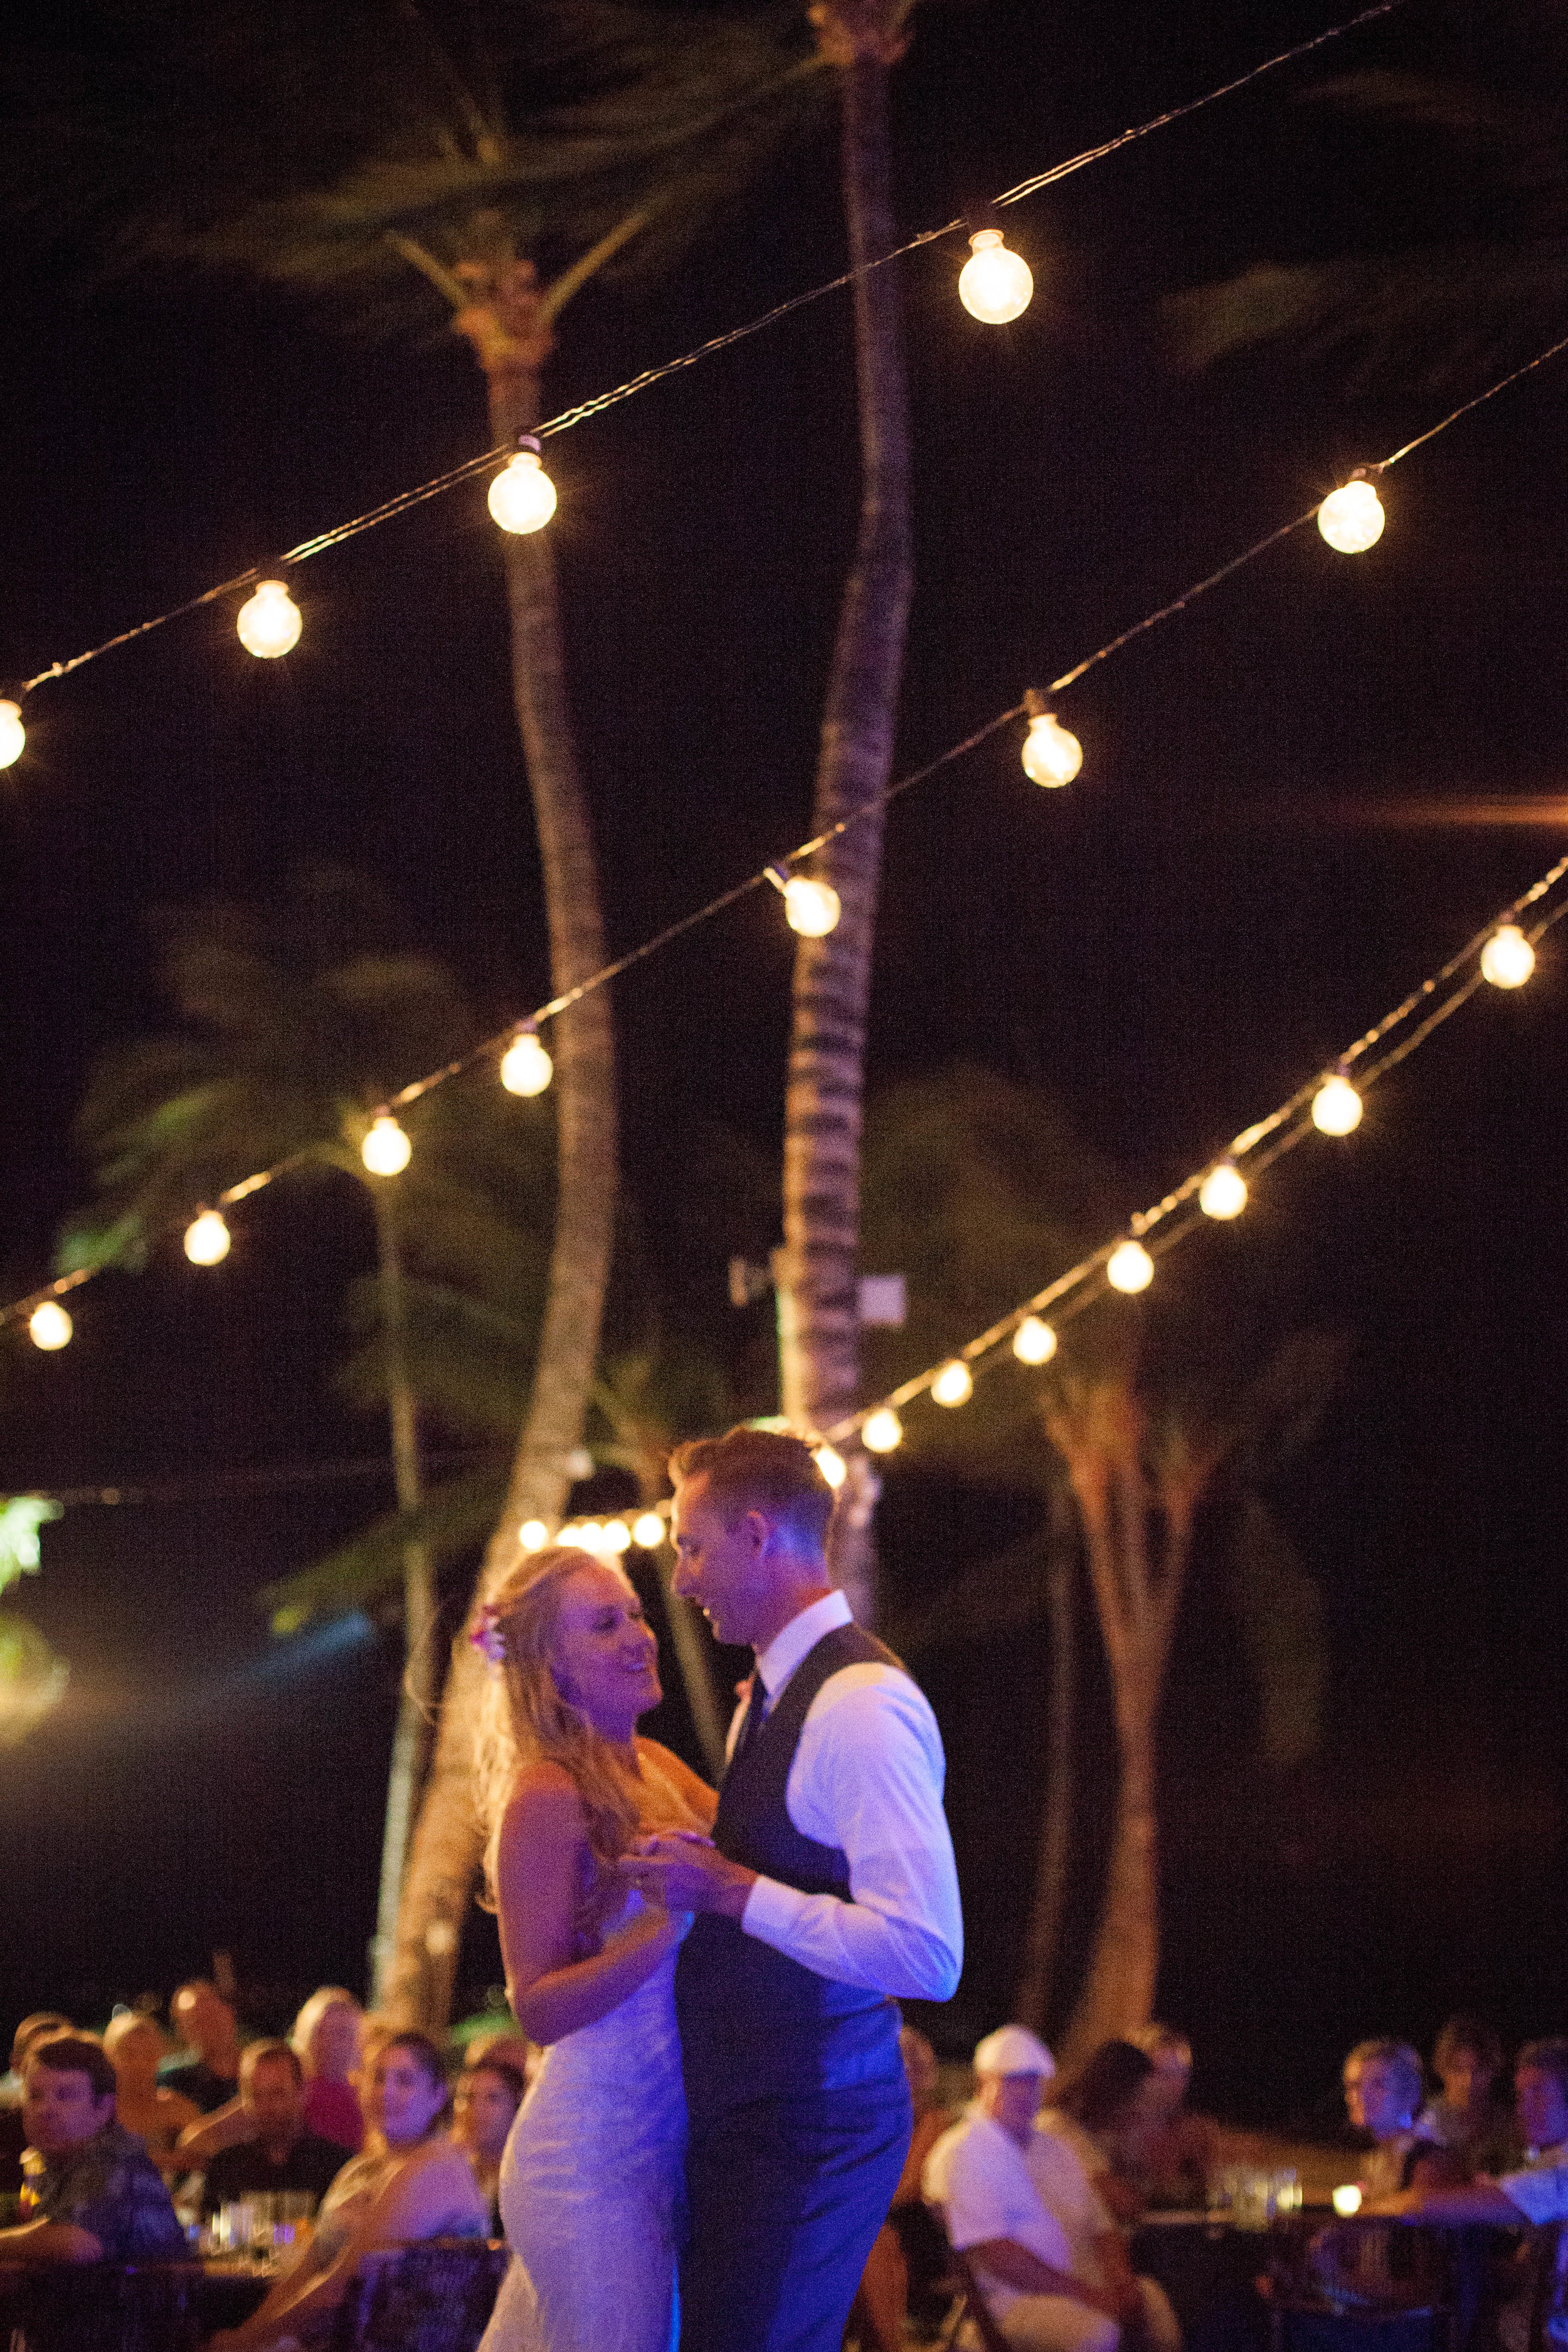 big island hawaii fairmont orchid beach wedding © kelilina photography 20170812210237-1.jpg